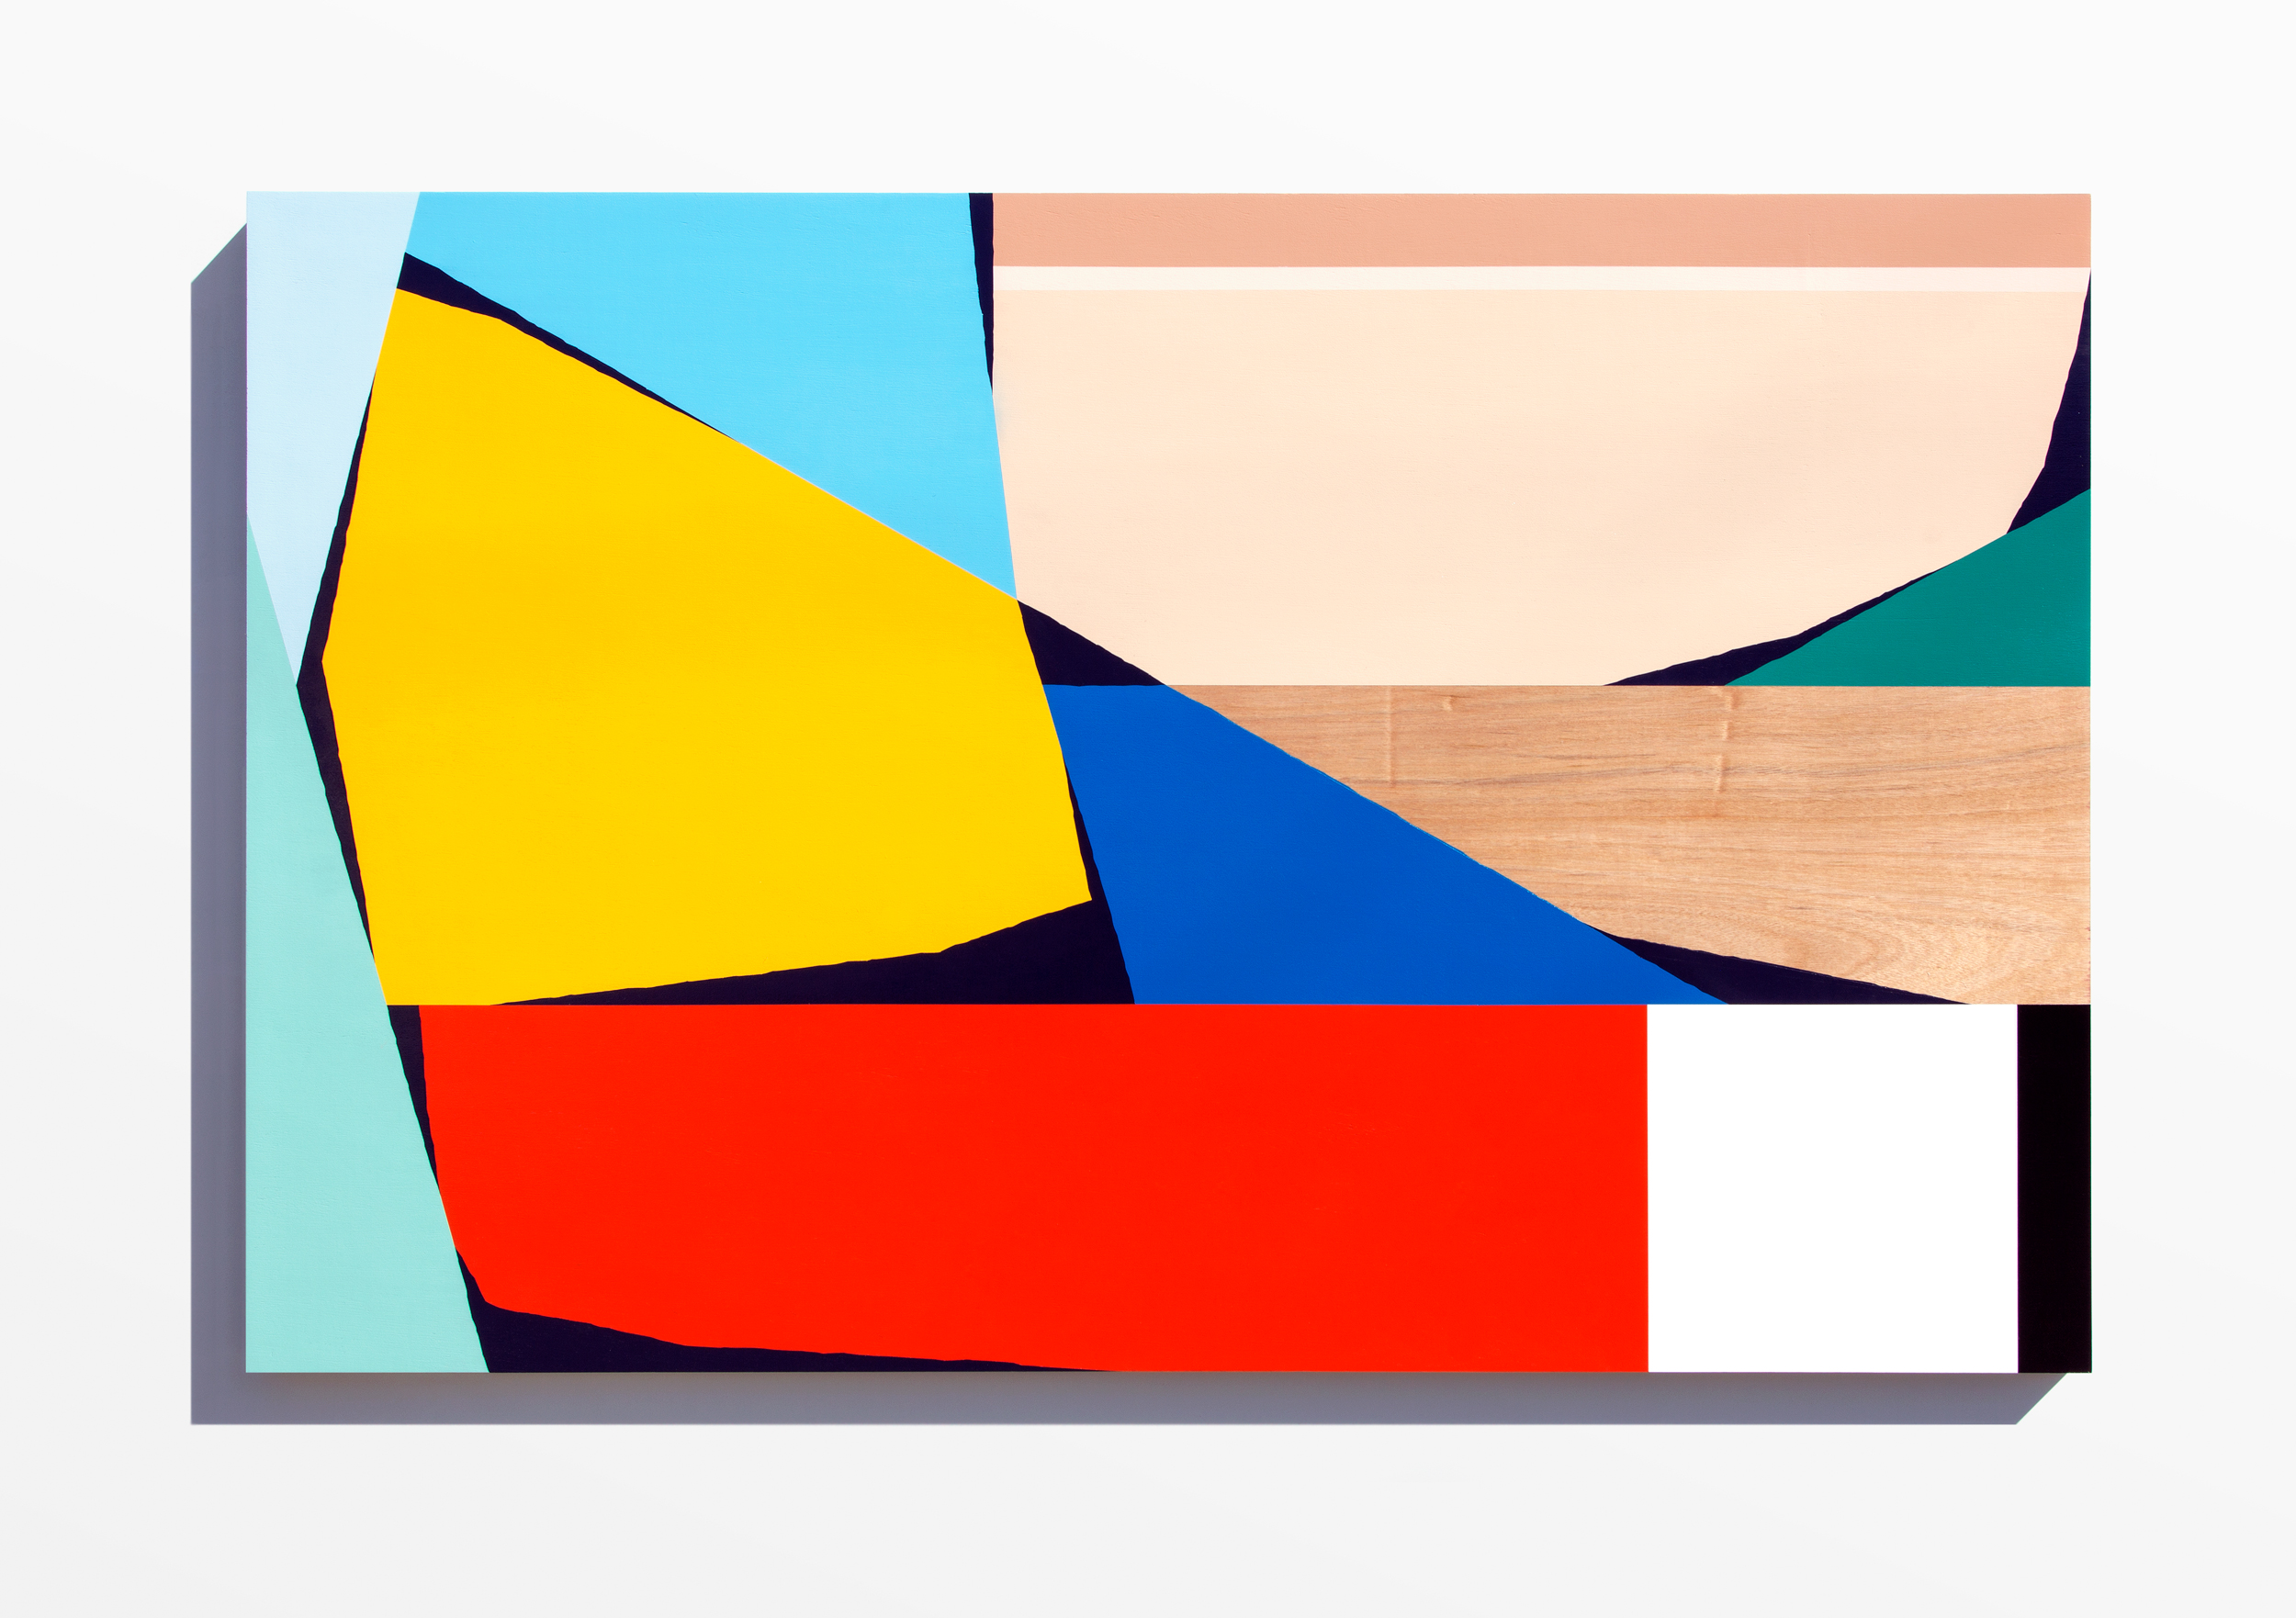 Untitled, 2017 Spray paint and polyurethane on birch panel 75 x 48 x 2 inches